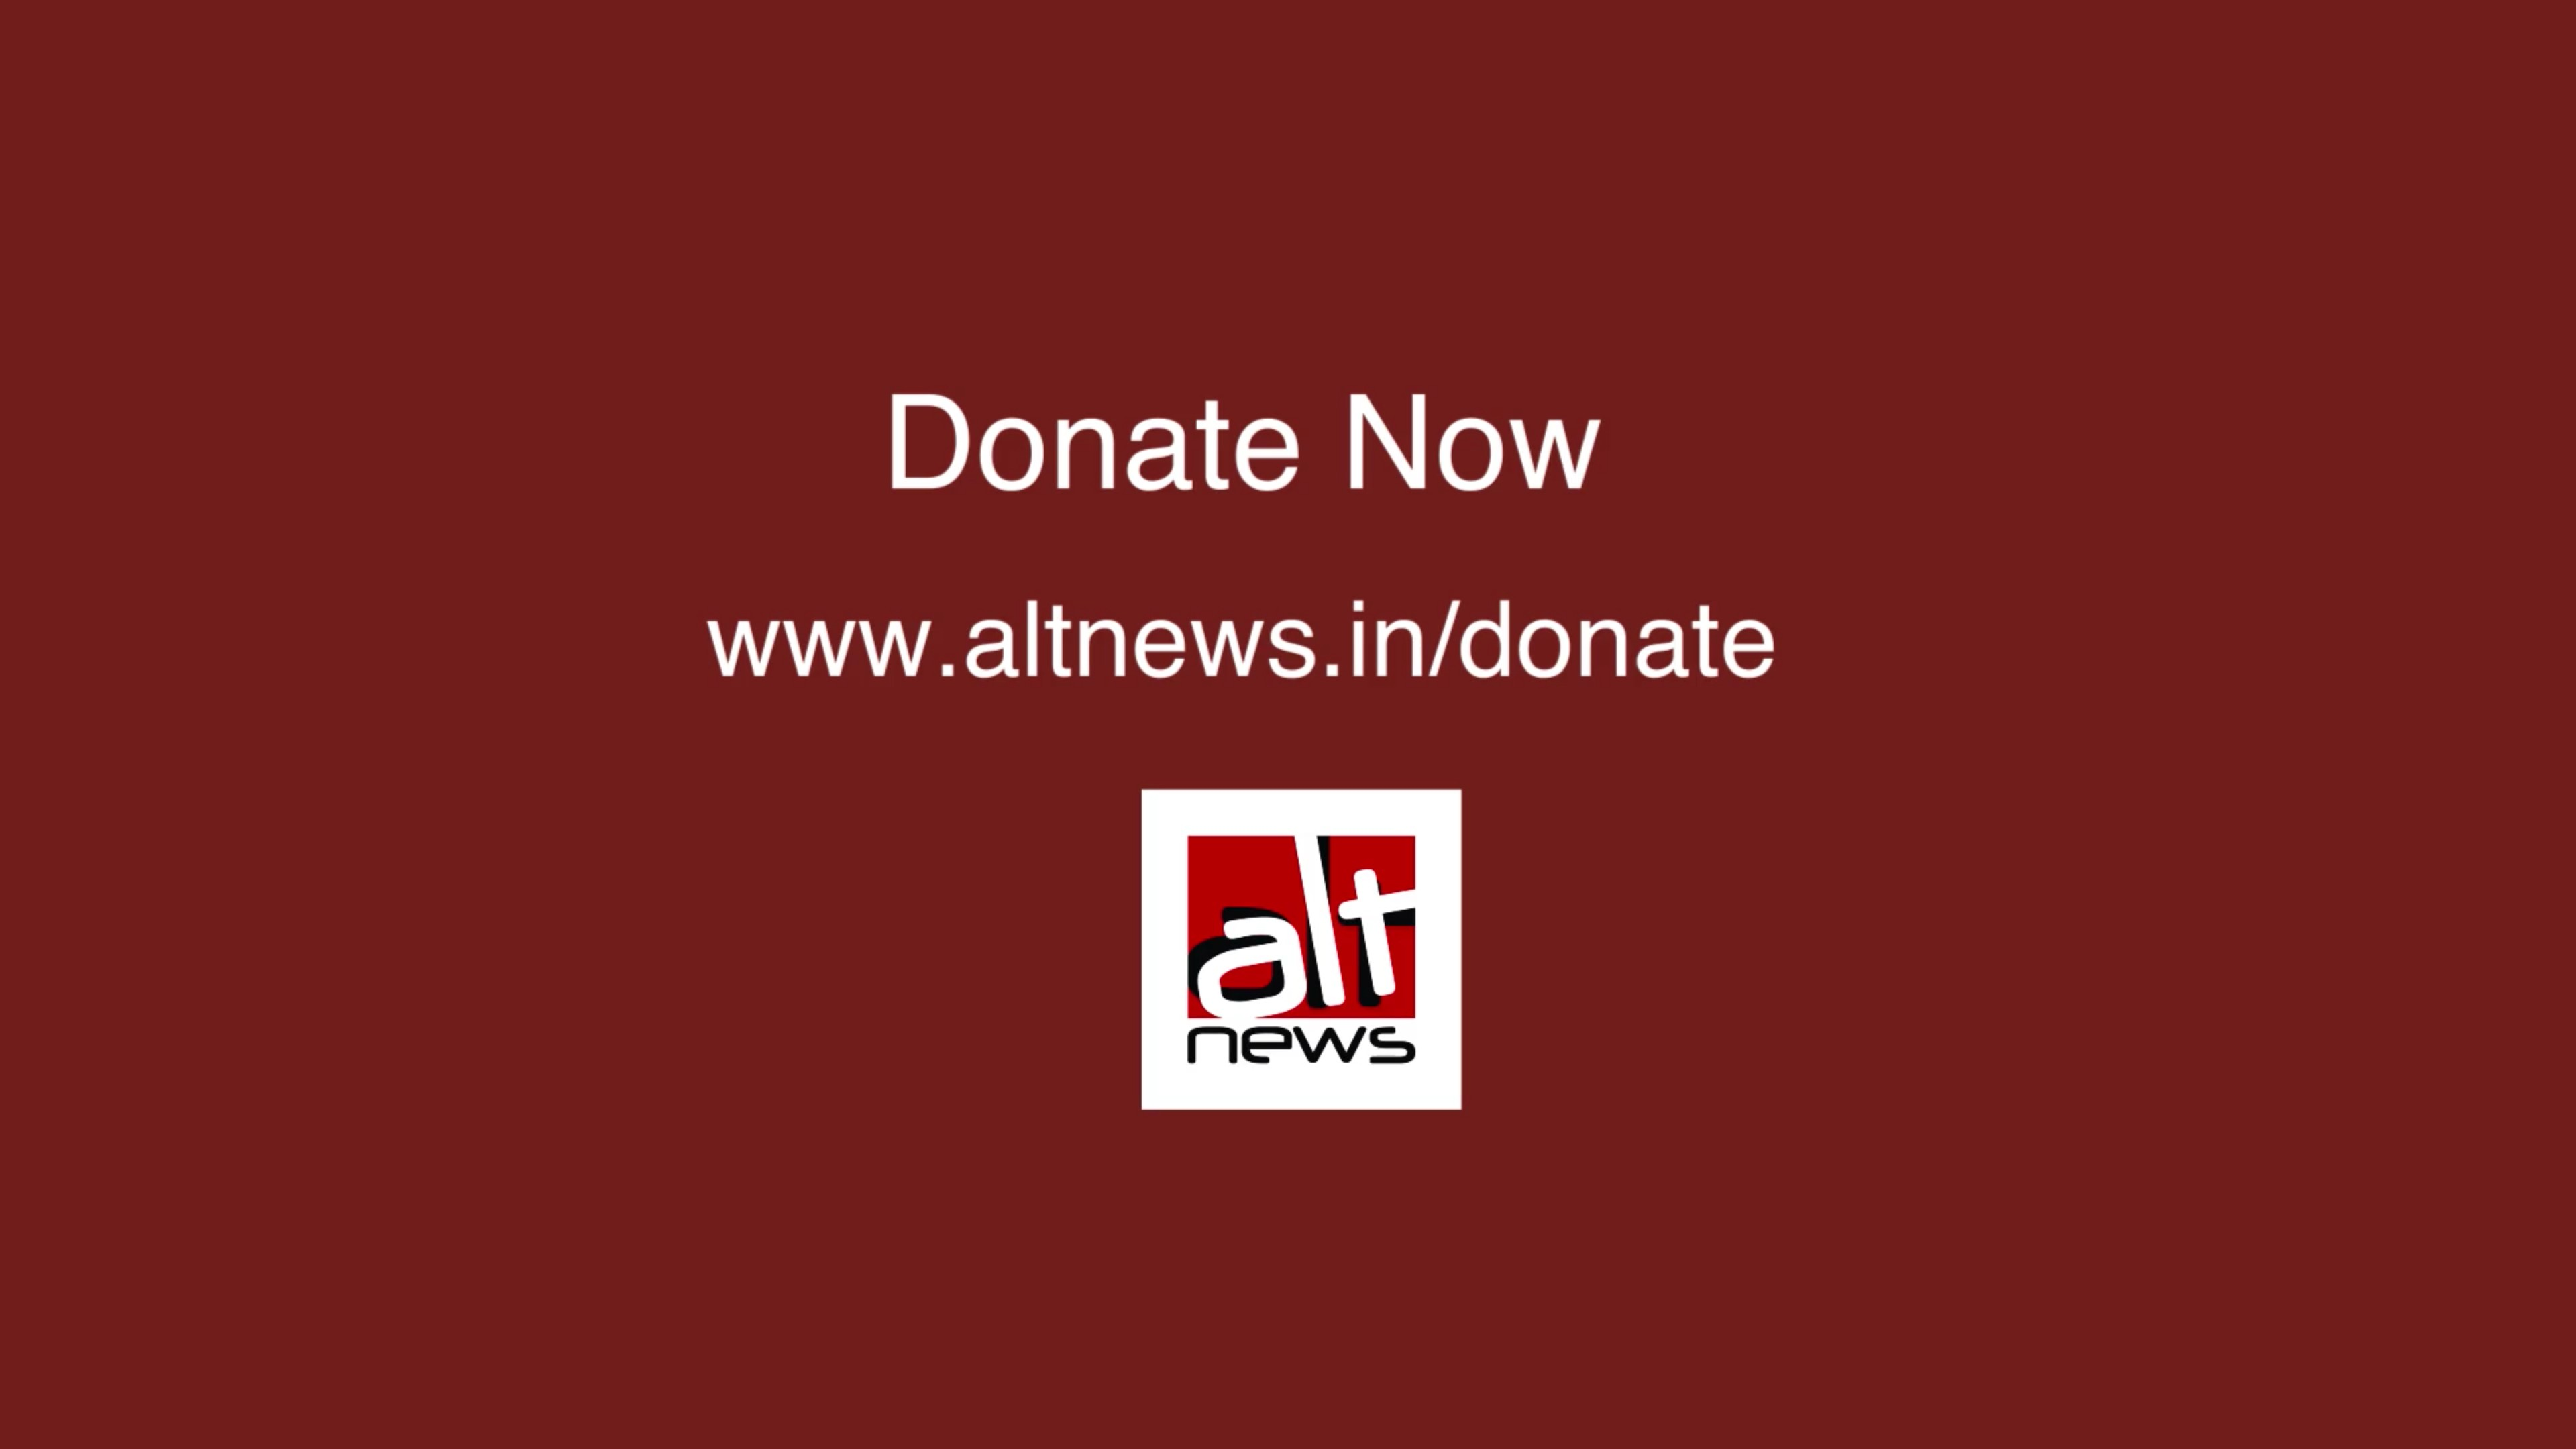 Alt News Donate